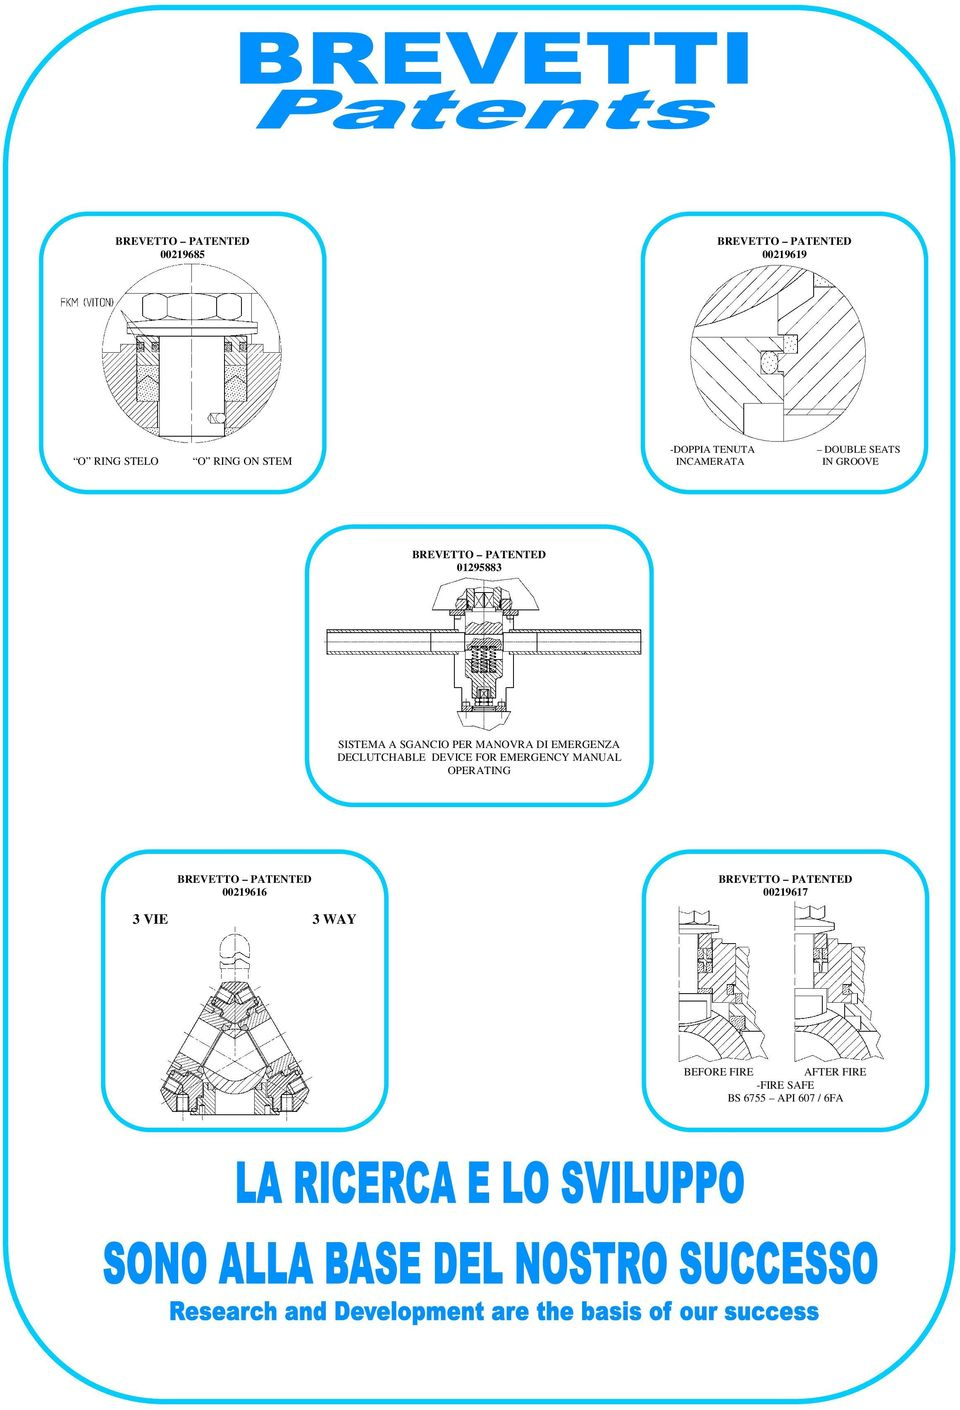 EMERGENZA DECLUTCHABLE DEVICE FOR EMERGENCY MANUAL OPERATING PATENTED 00219616